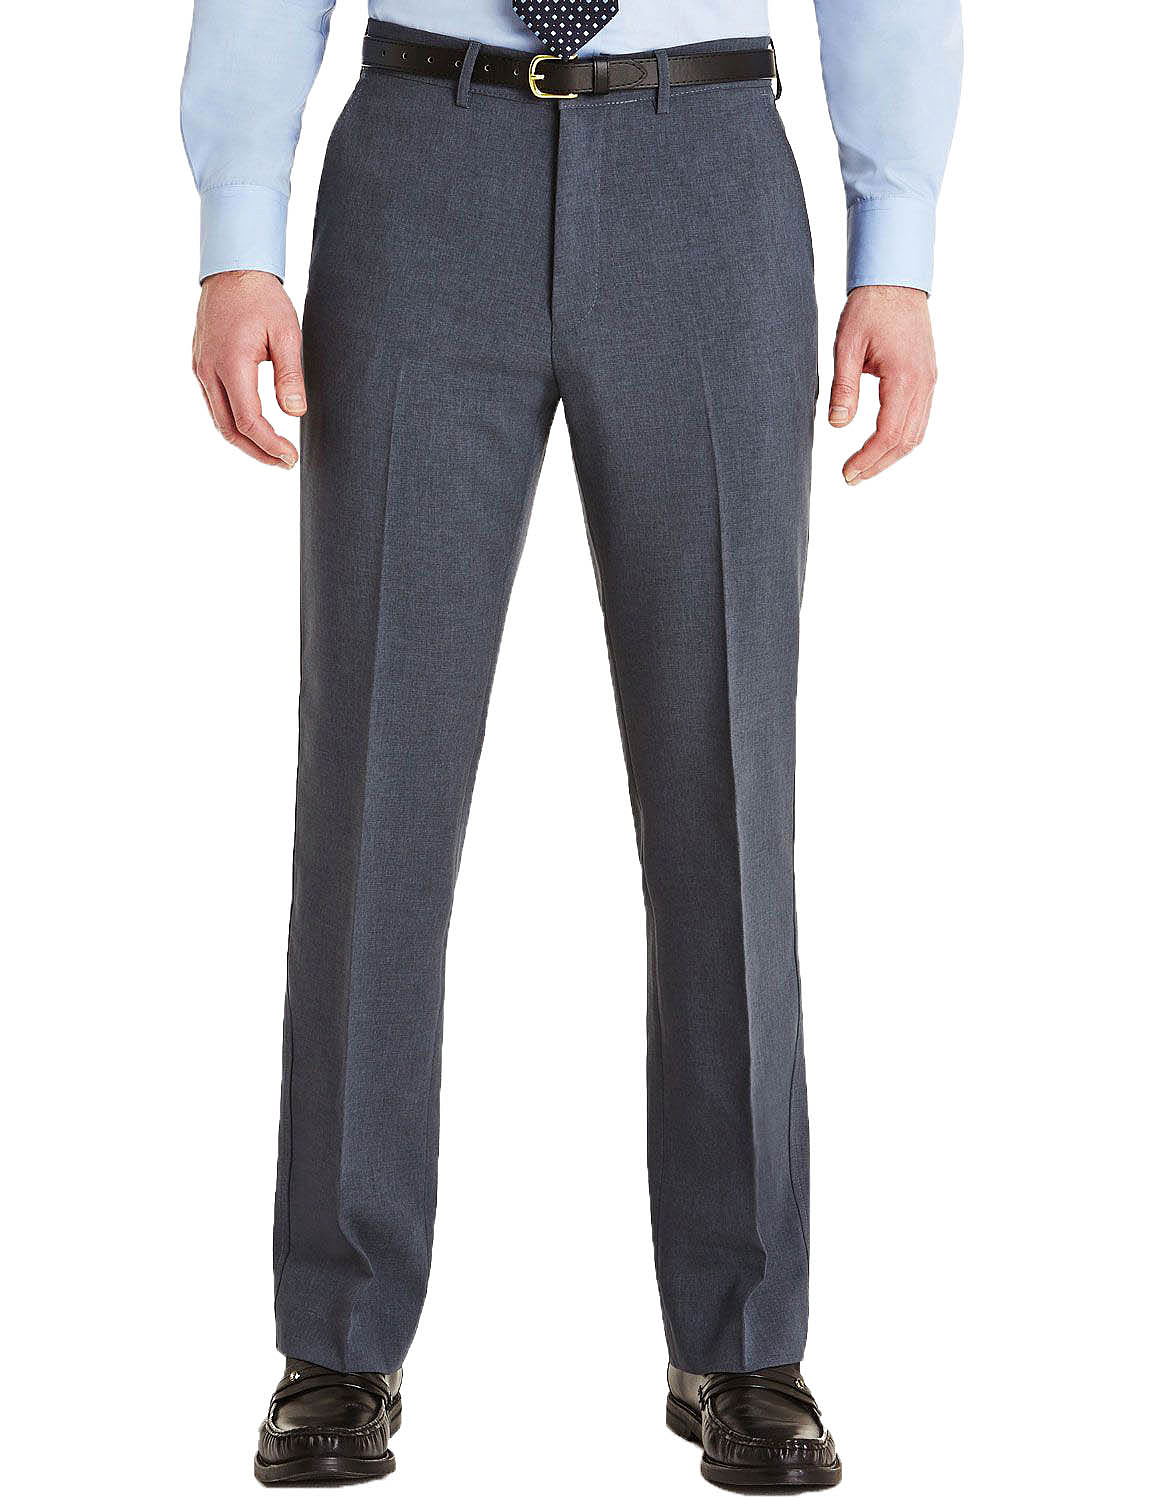 Home menswear brands farah farah slant pocket trouser